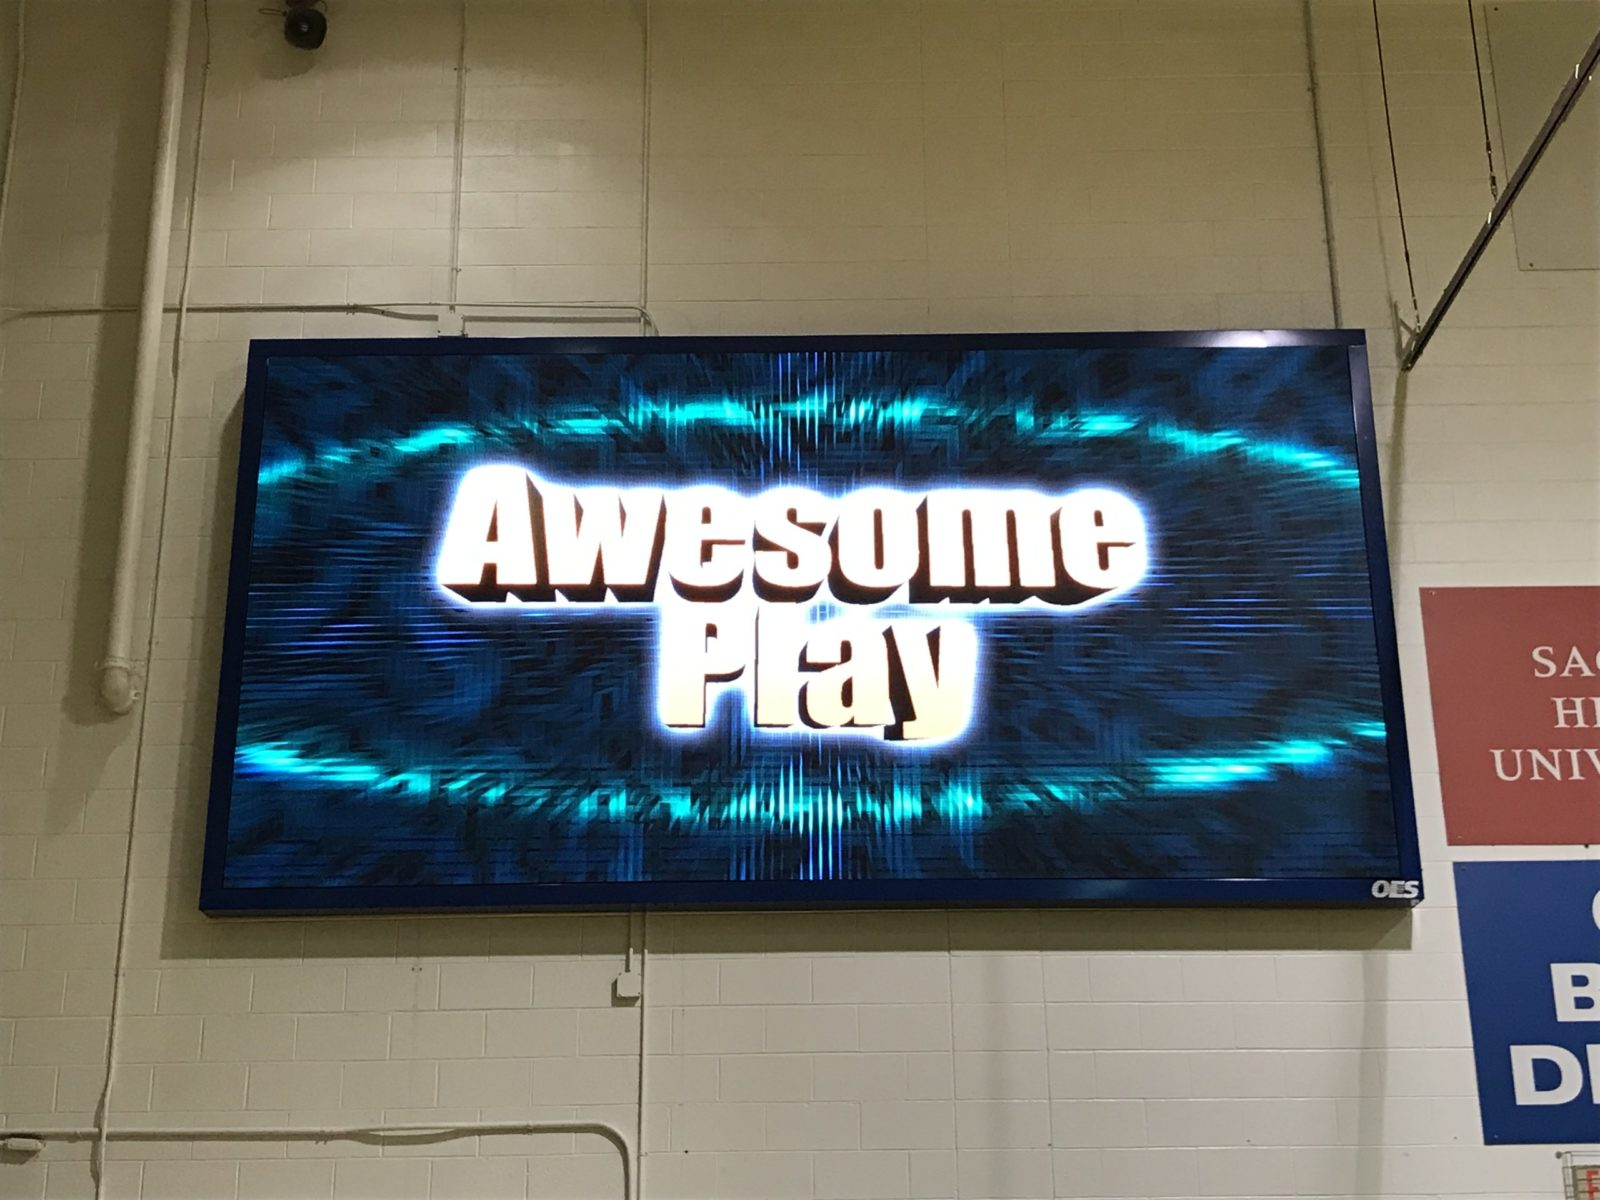 A new indoor LED scoreboard displaying the words Awesome Play.